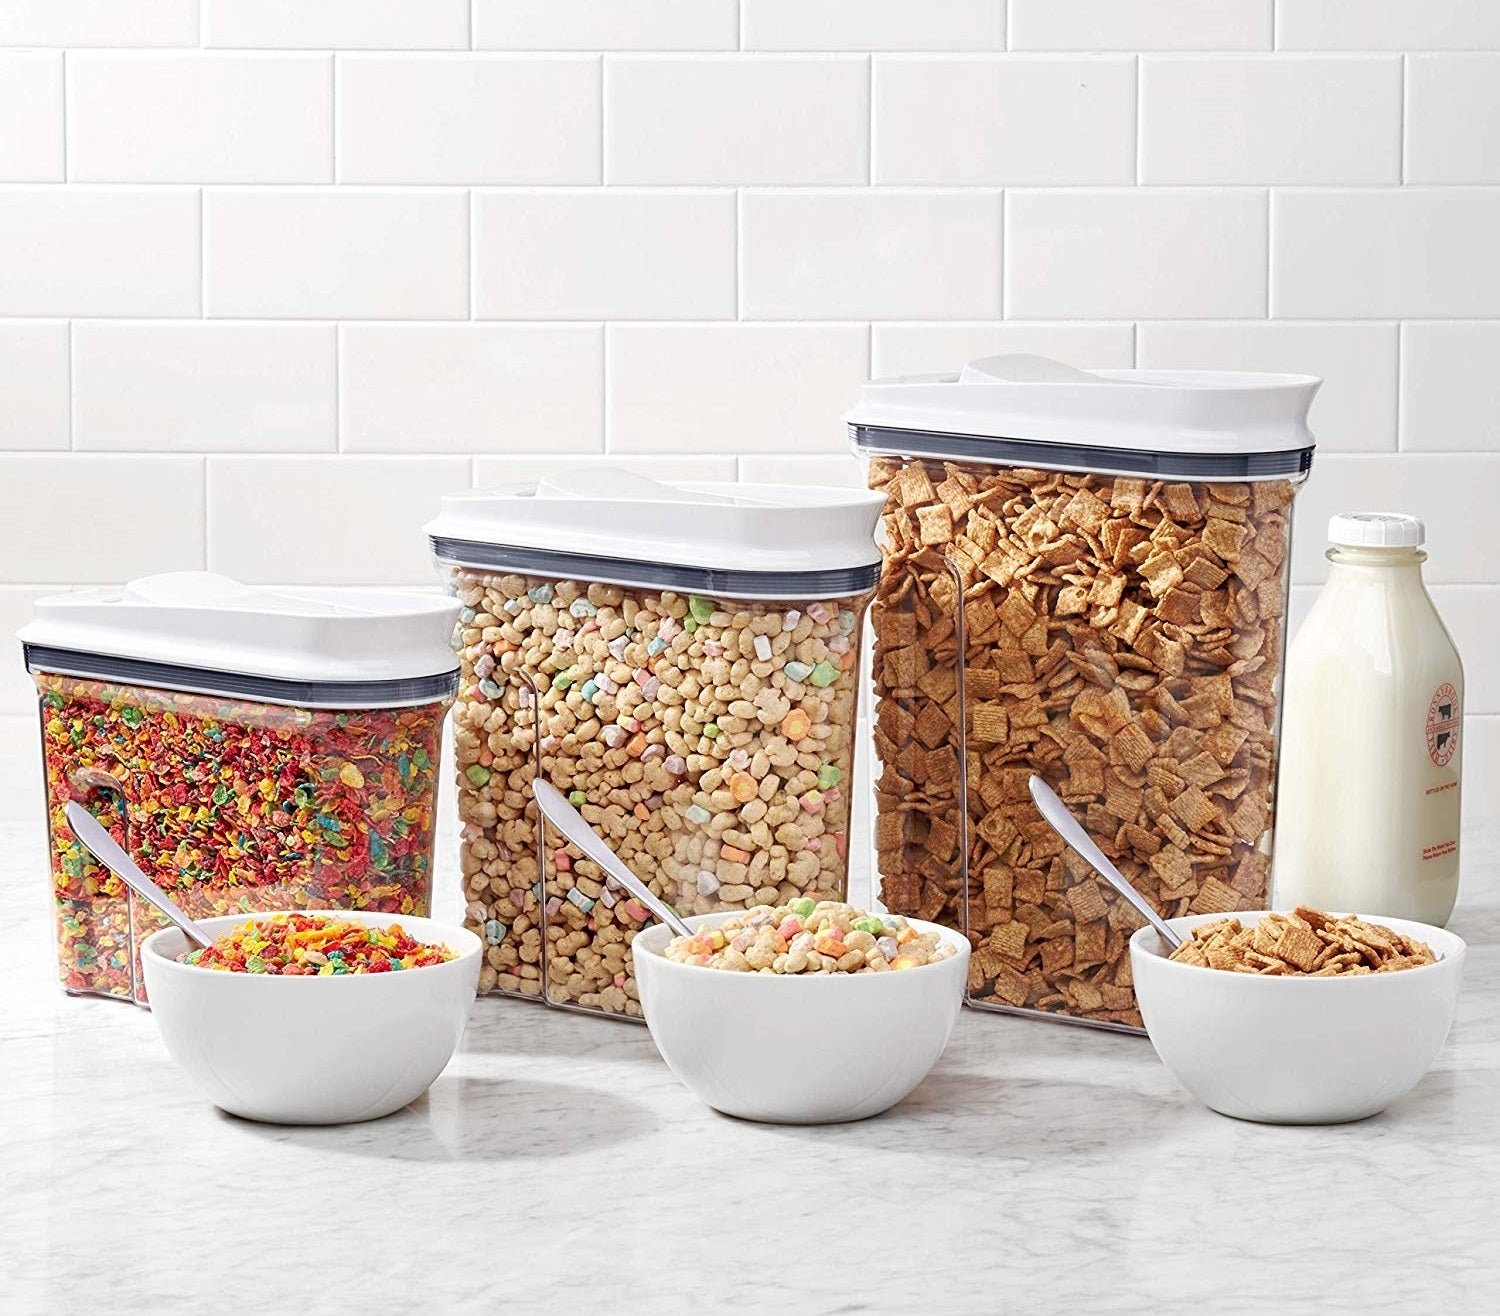 Three containers filled with different types of cereal